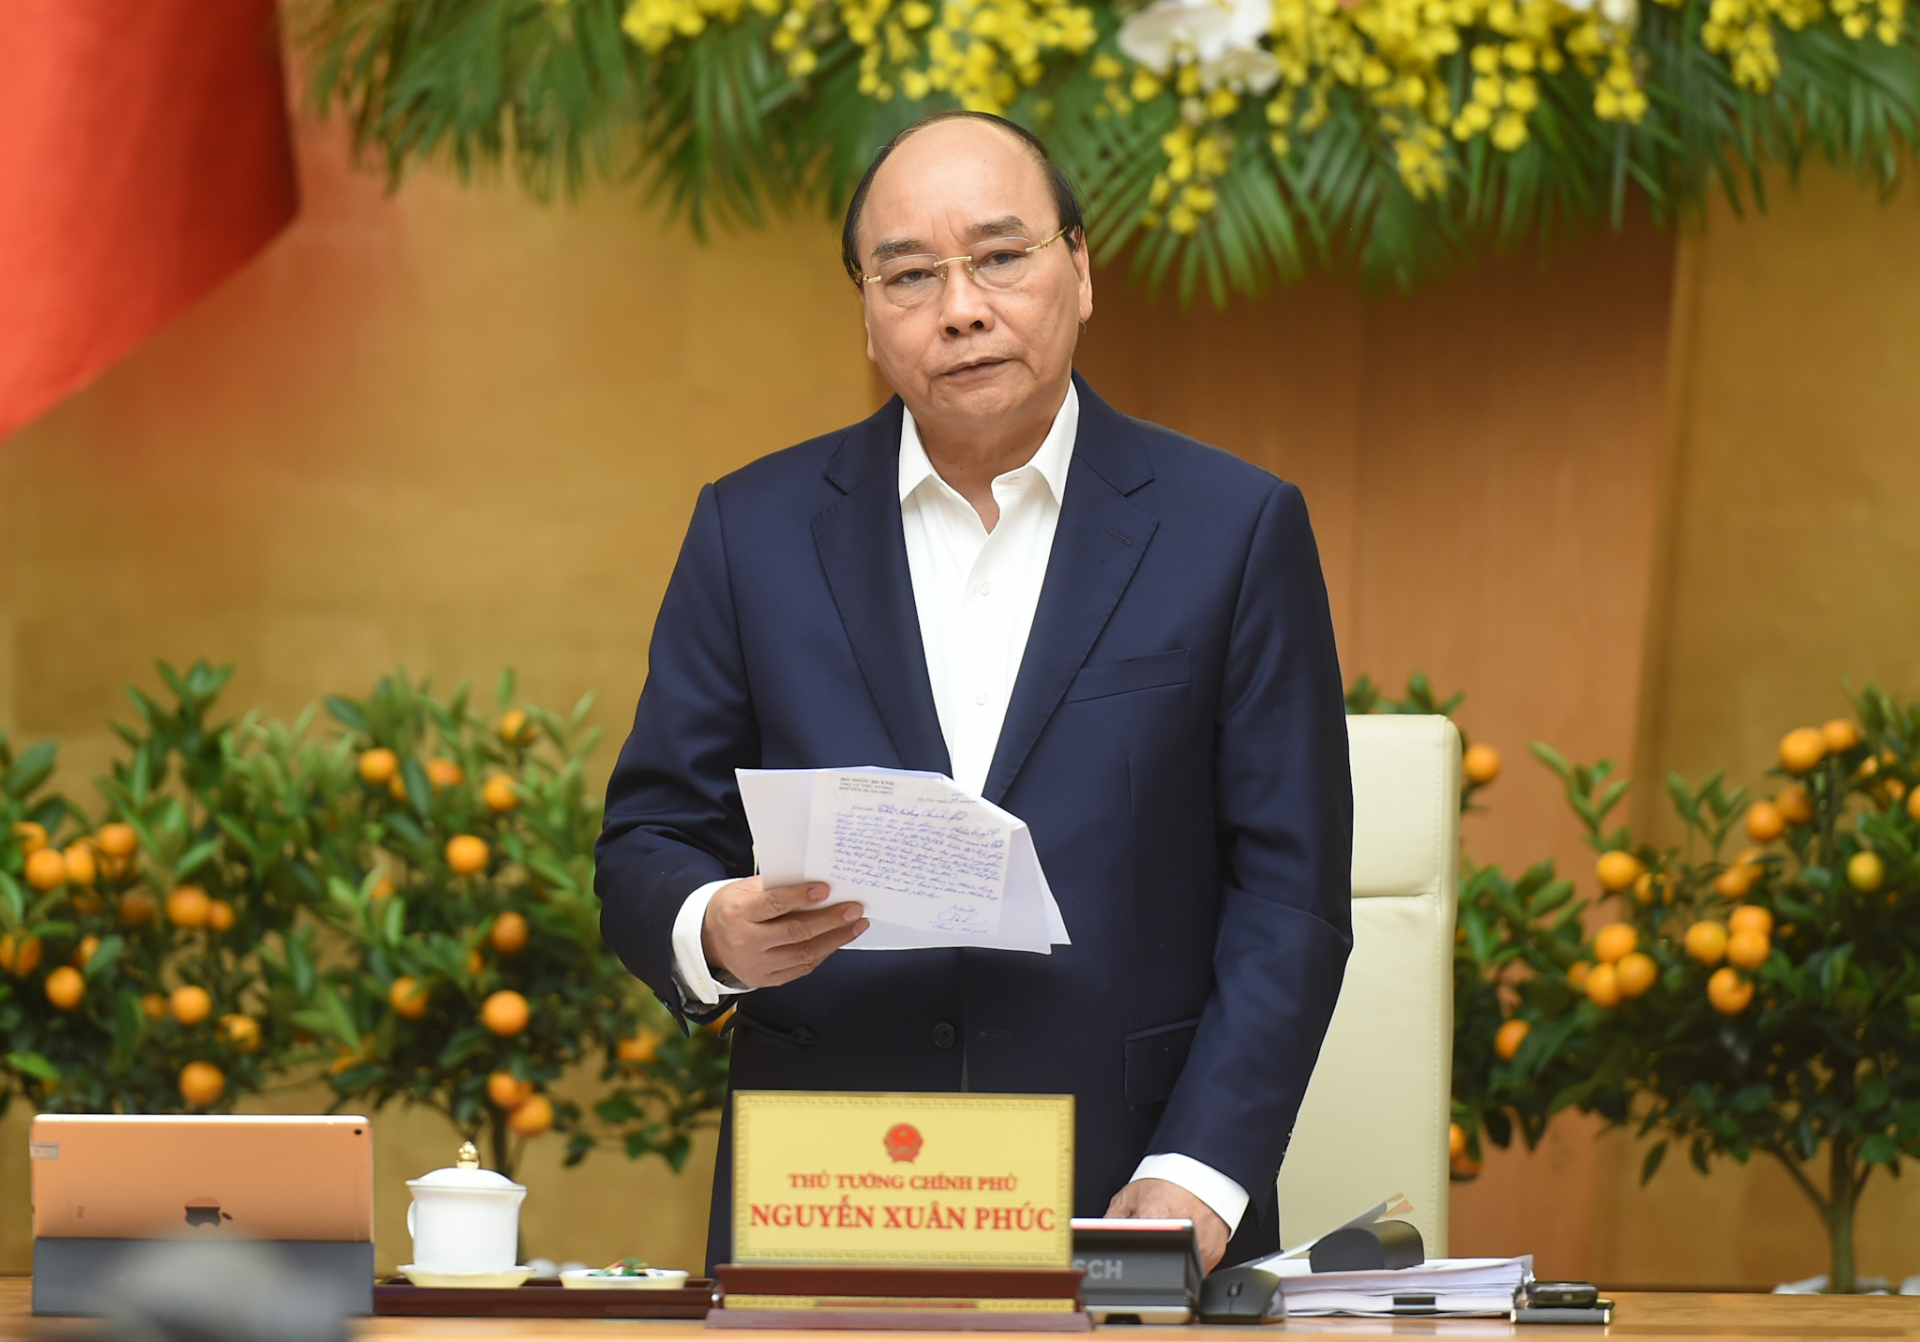 pm nguyen xuan phuc requests covid 19 vaccine supply to be ready in first quarter